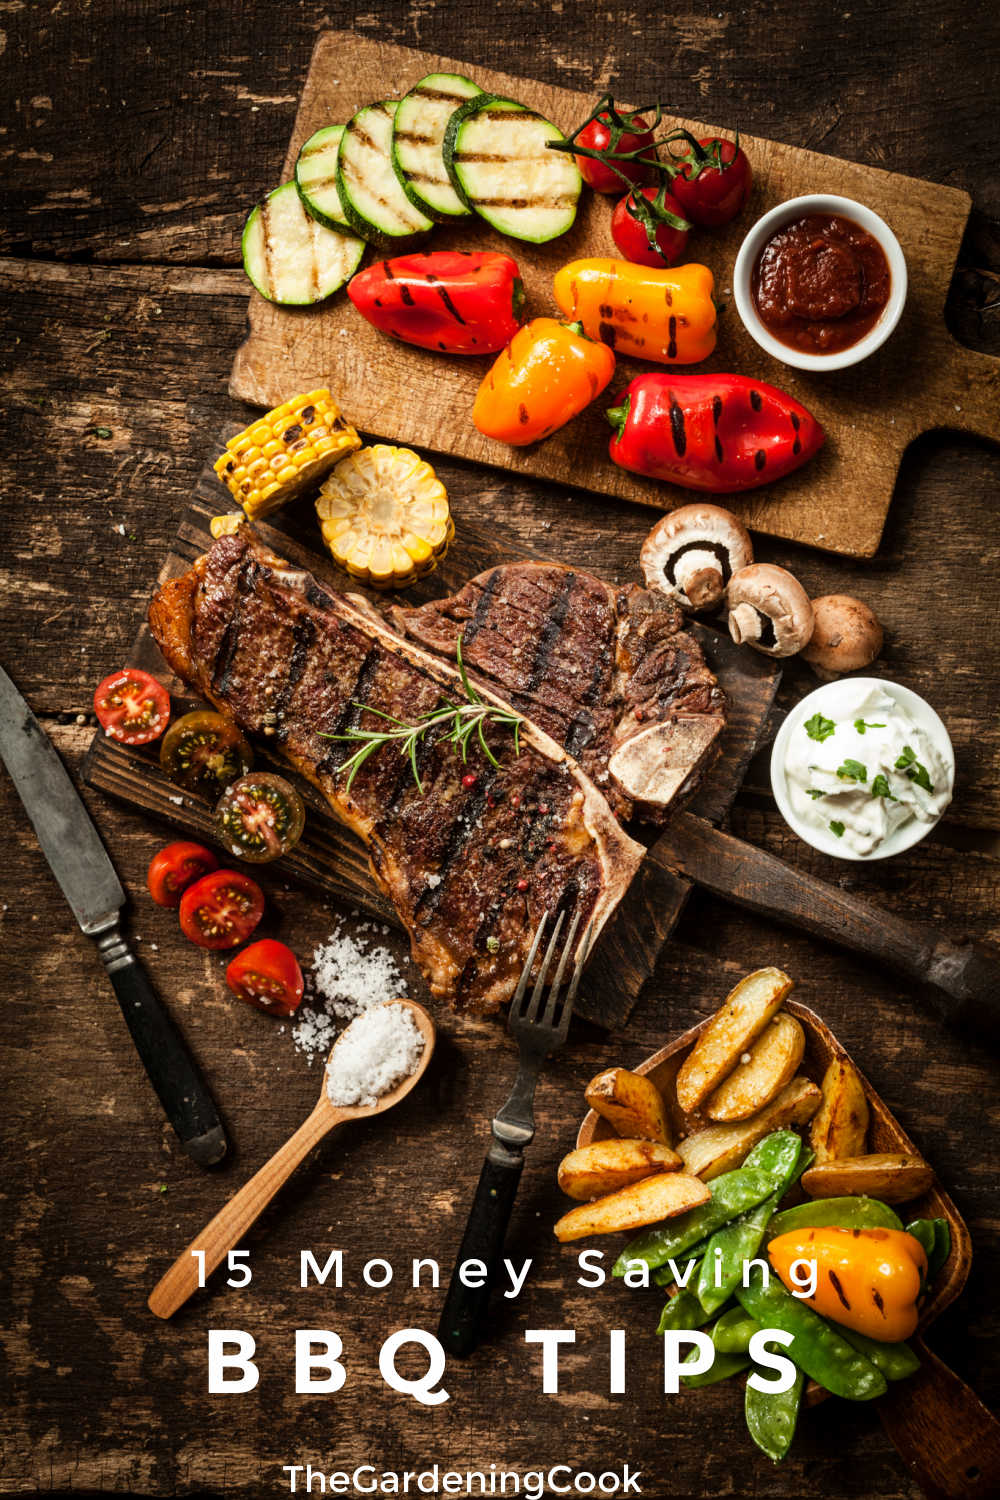 Scene of meats and vegetables that have been grilled and text reading 15 Money Saving BBQ tips.